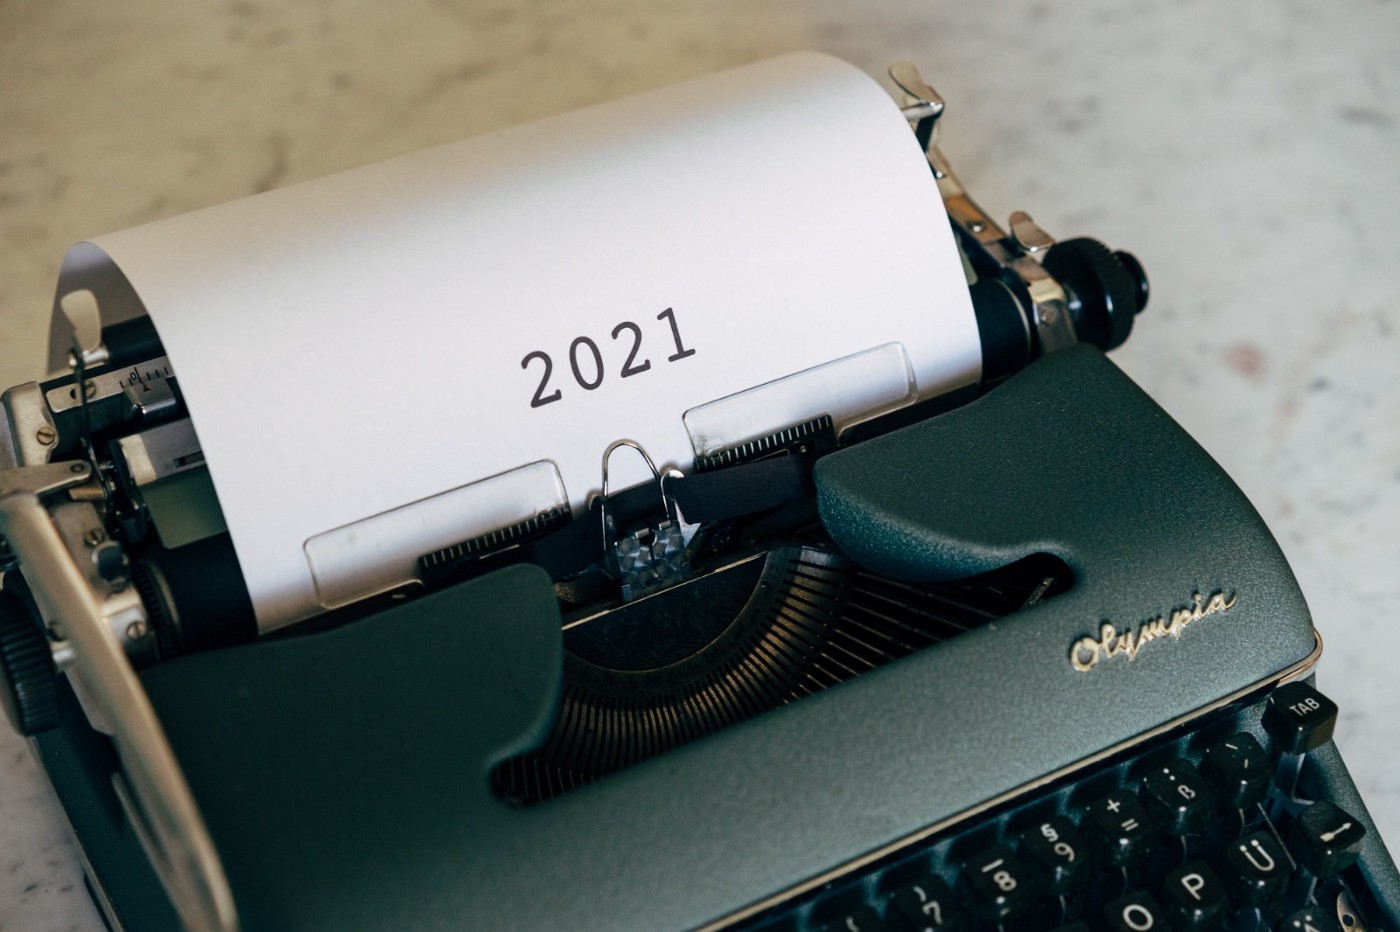 an antique typewriter with numbers 2021 on sheet of white paper